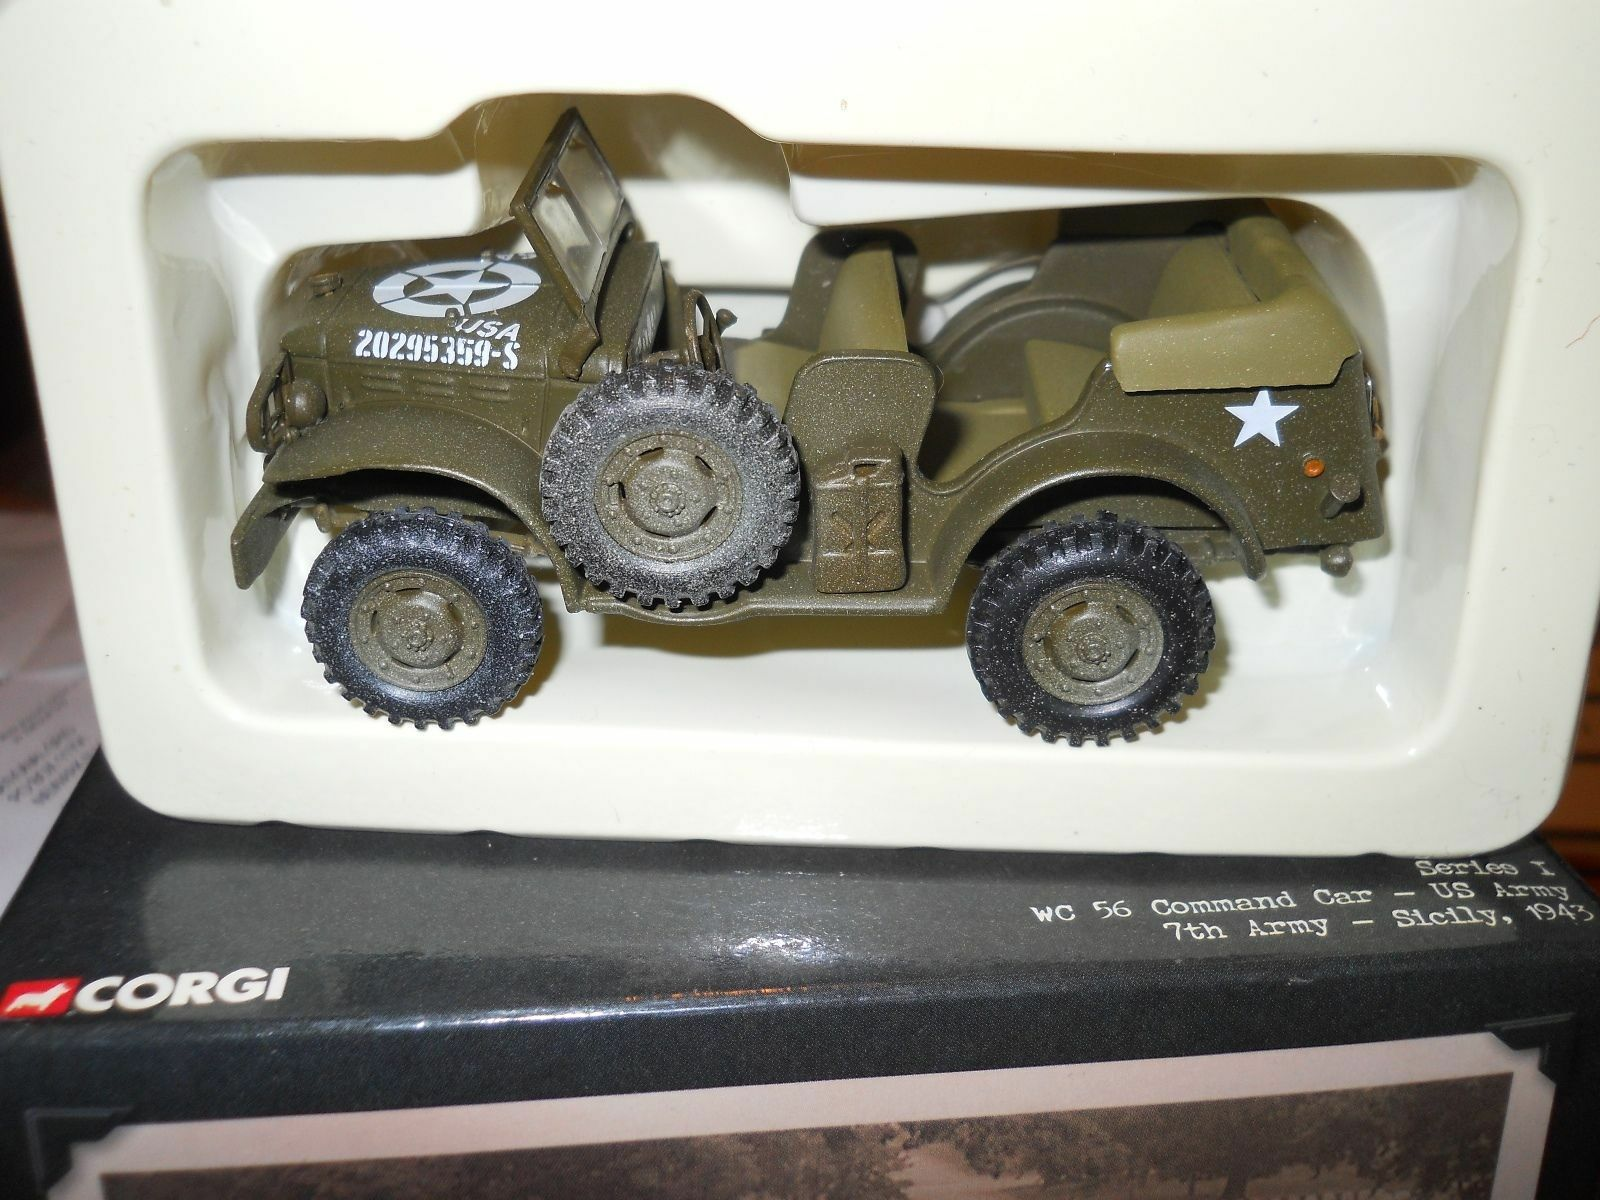 CORGI  WC 56 COMhommeD  voiture US ARMY 7TH ARMY 1943   CC51708 1 43  cherche agent commercial